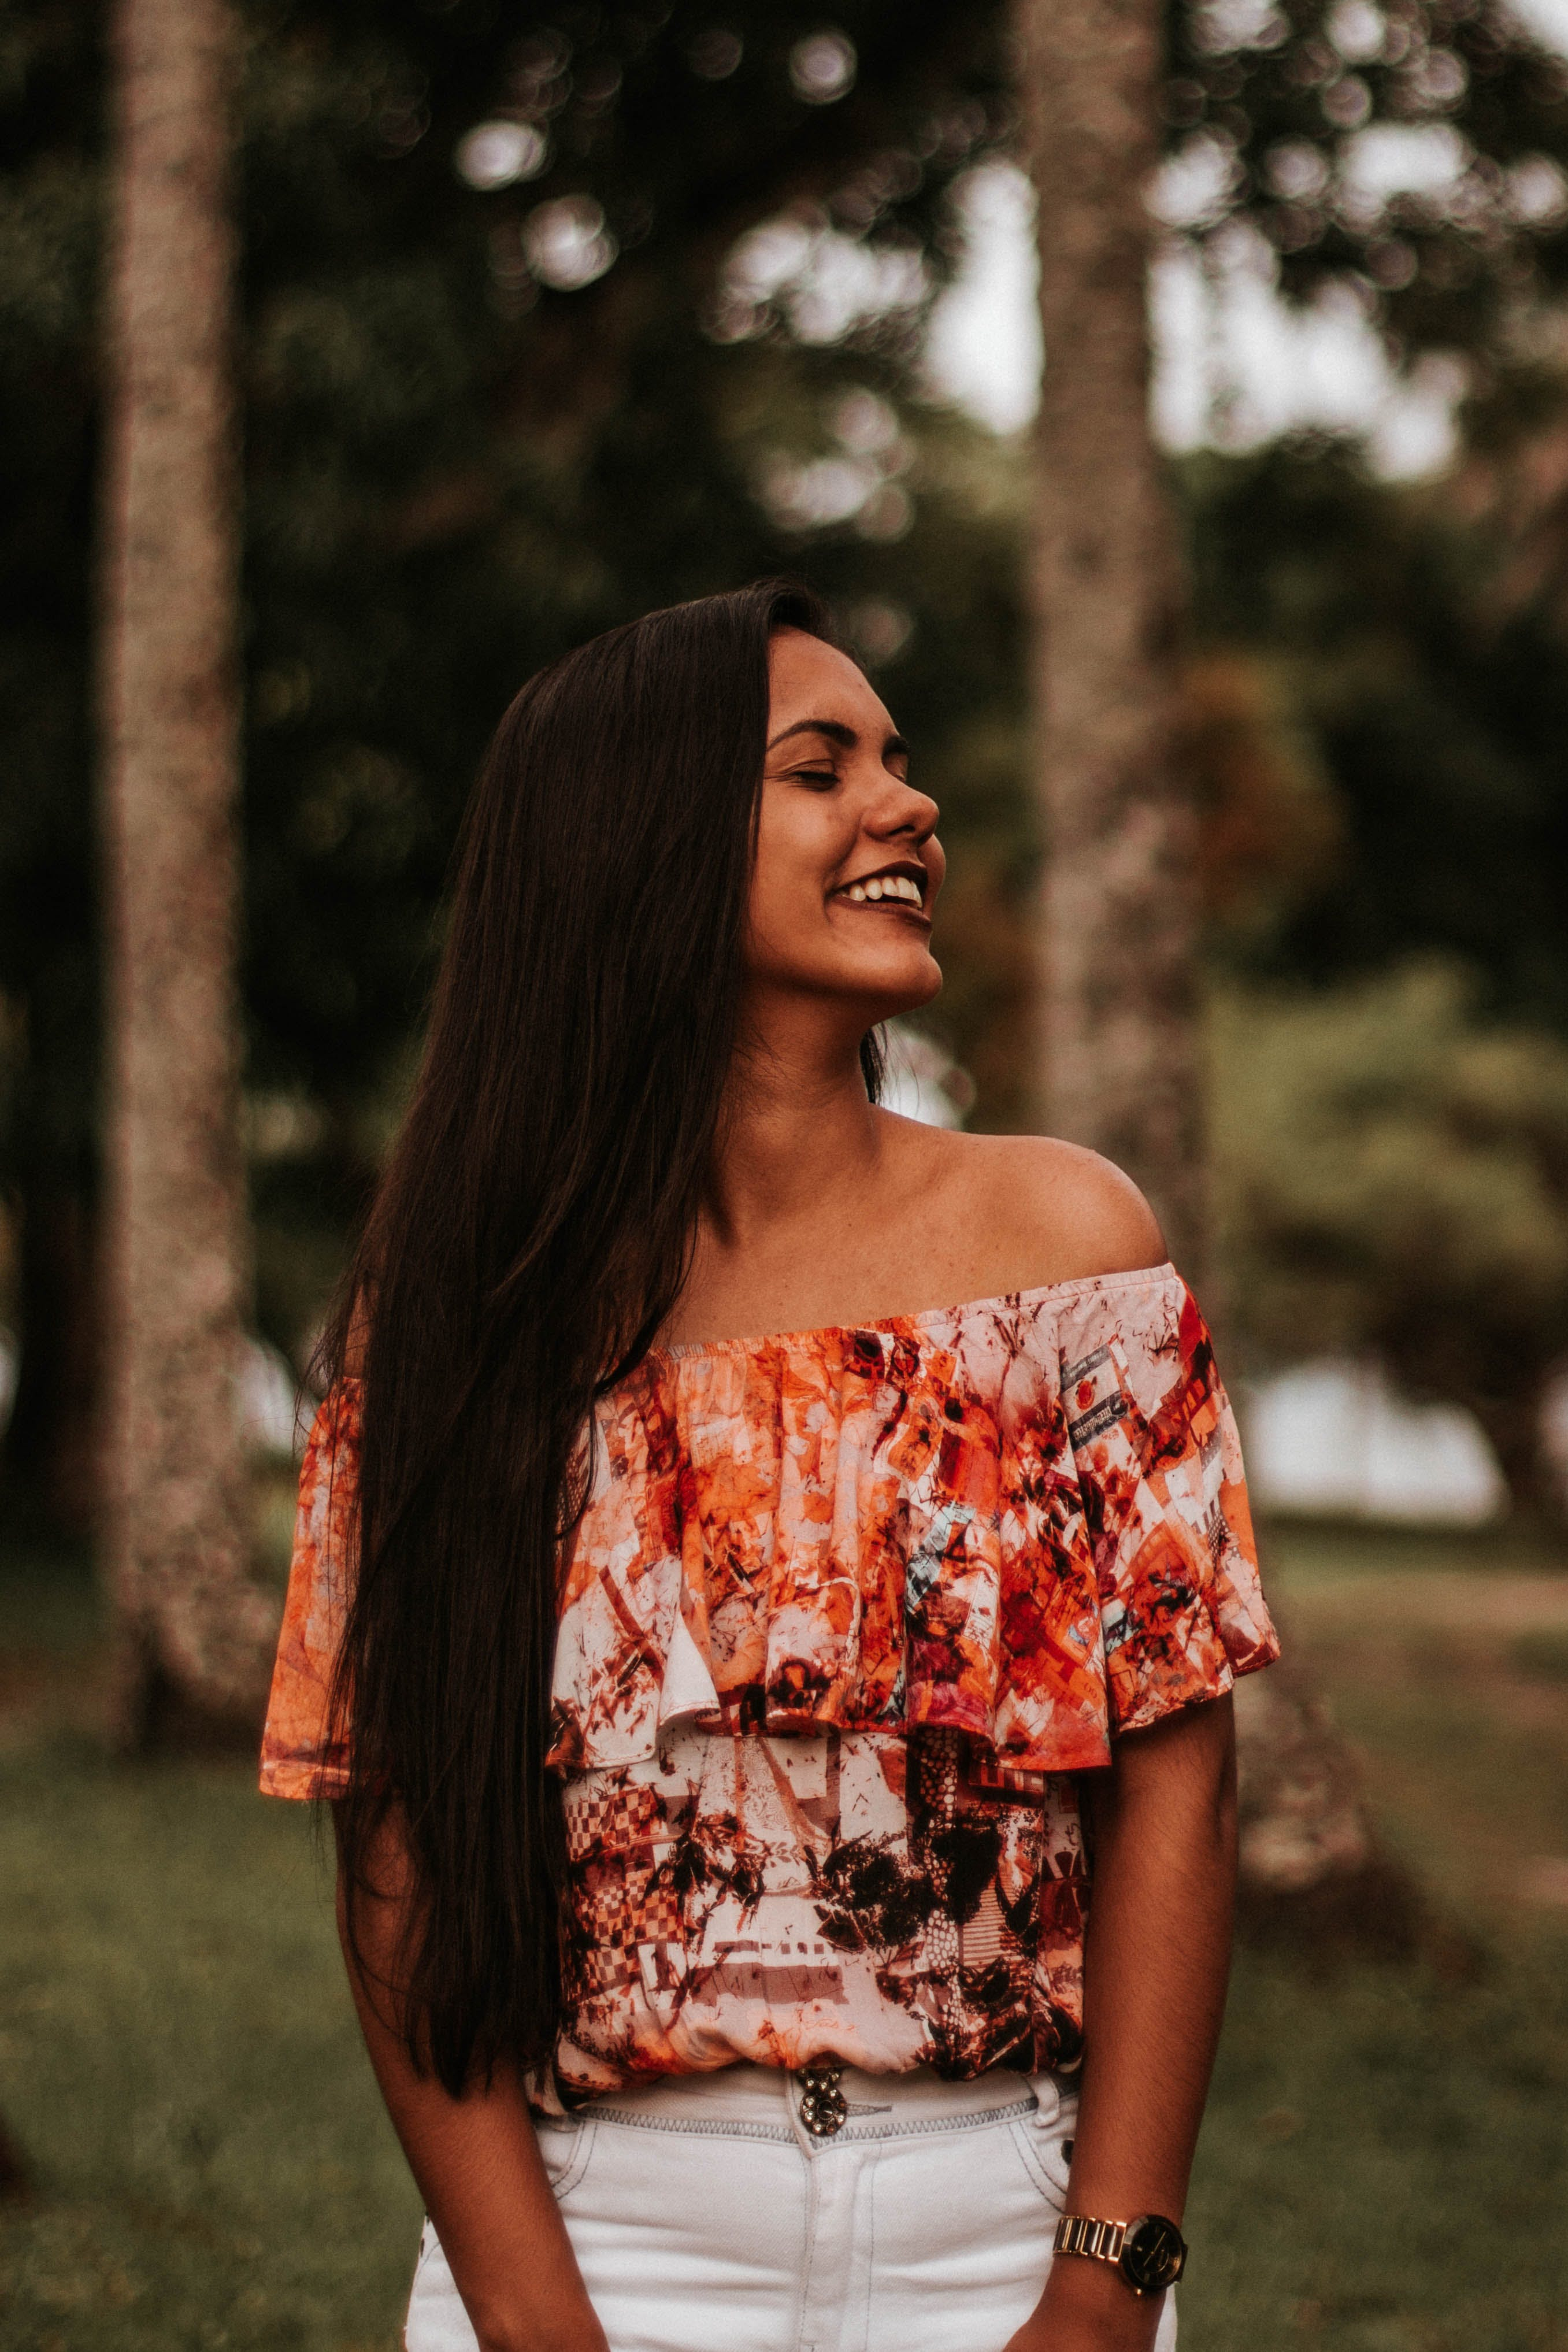 Photo of Smiling Woman in Red and White Floral Top with Her Eyes Closed